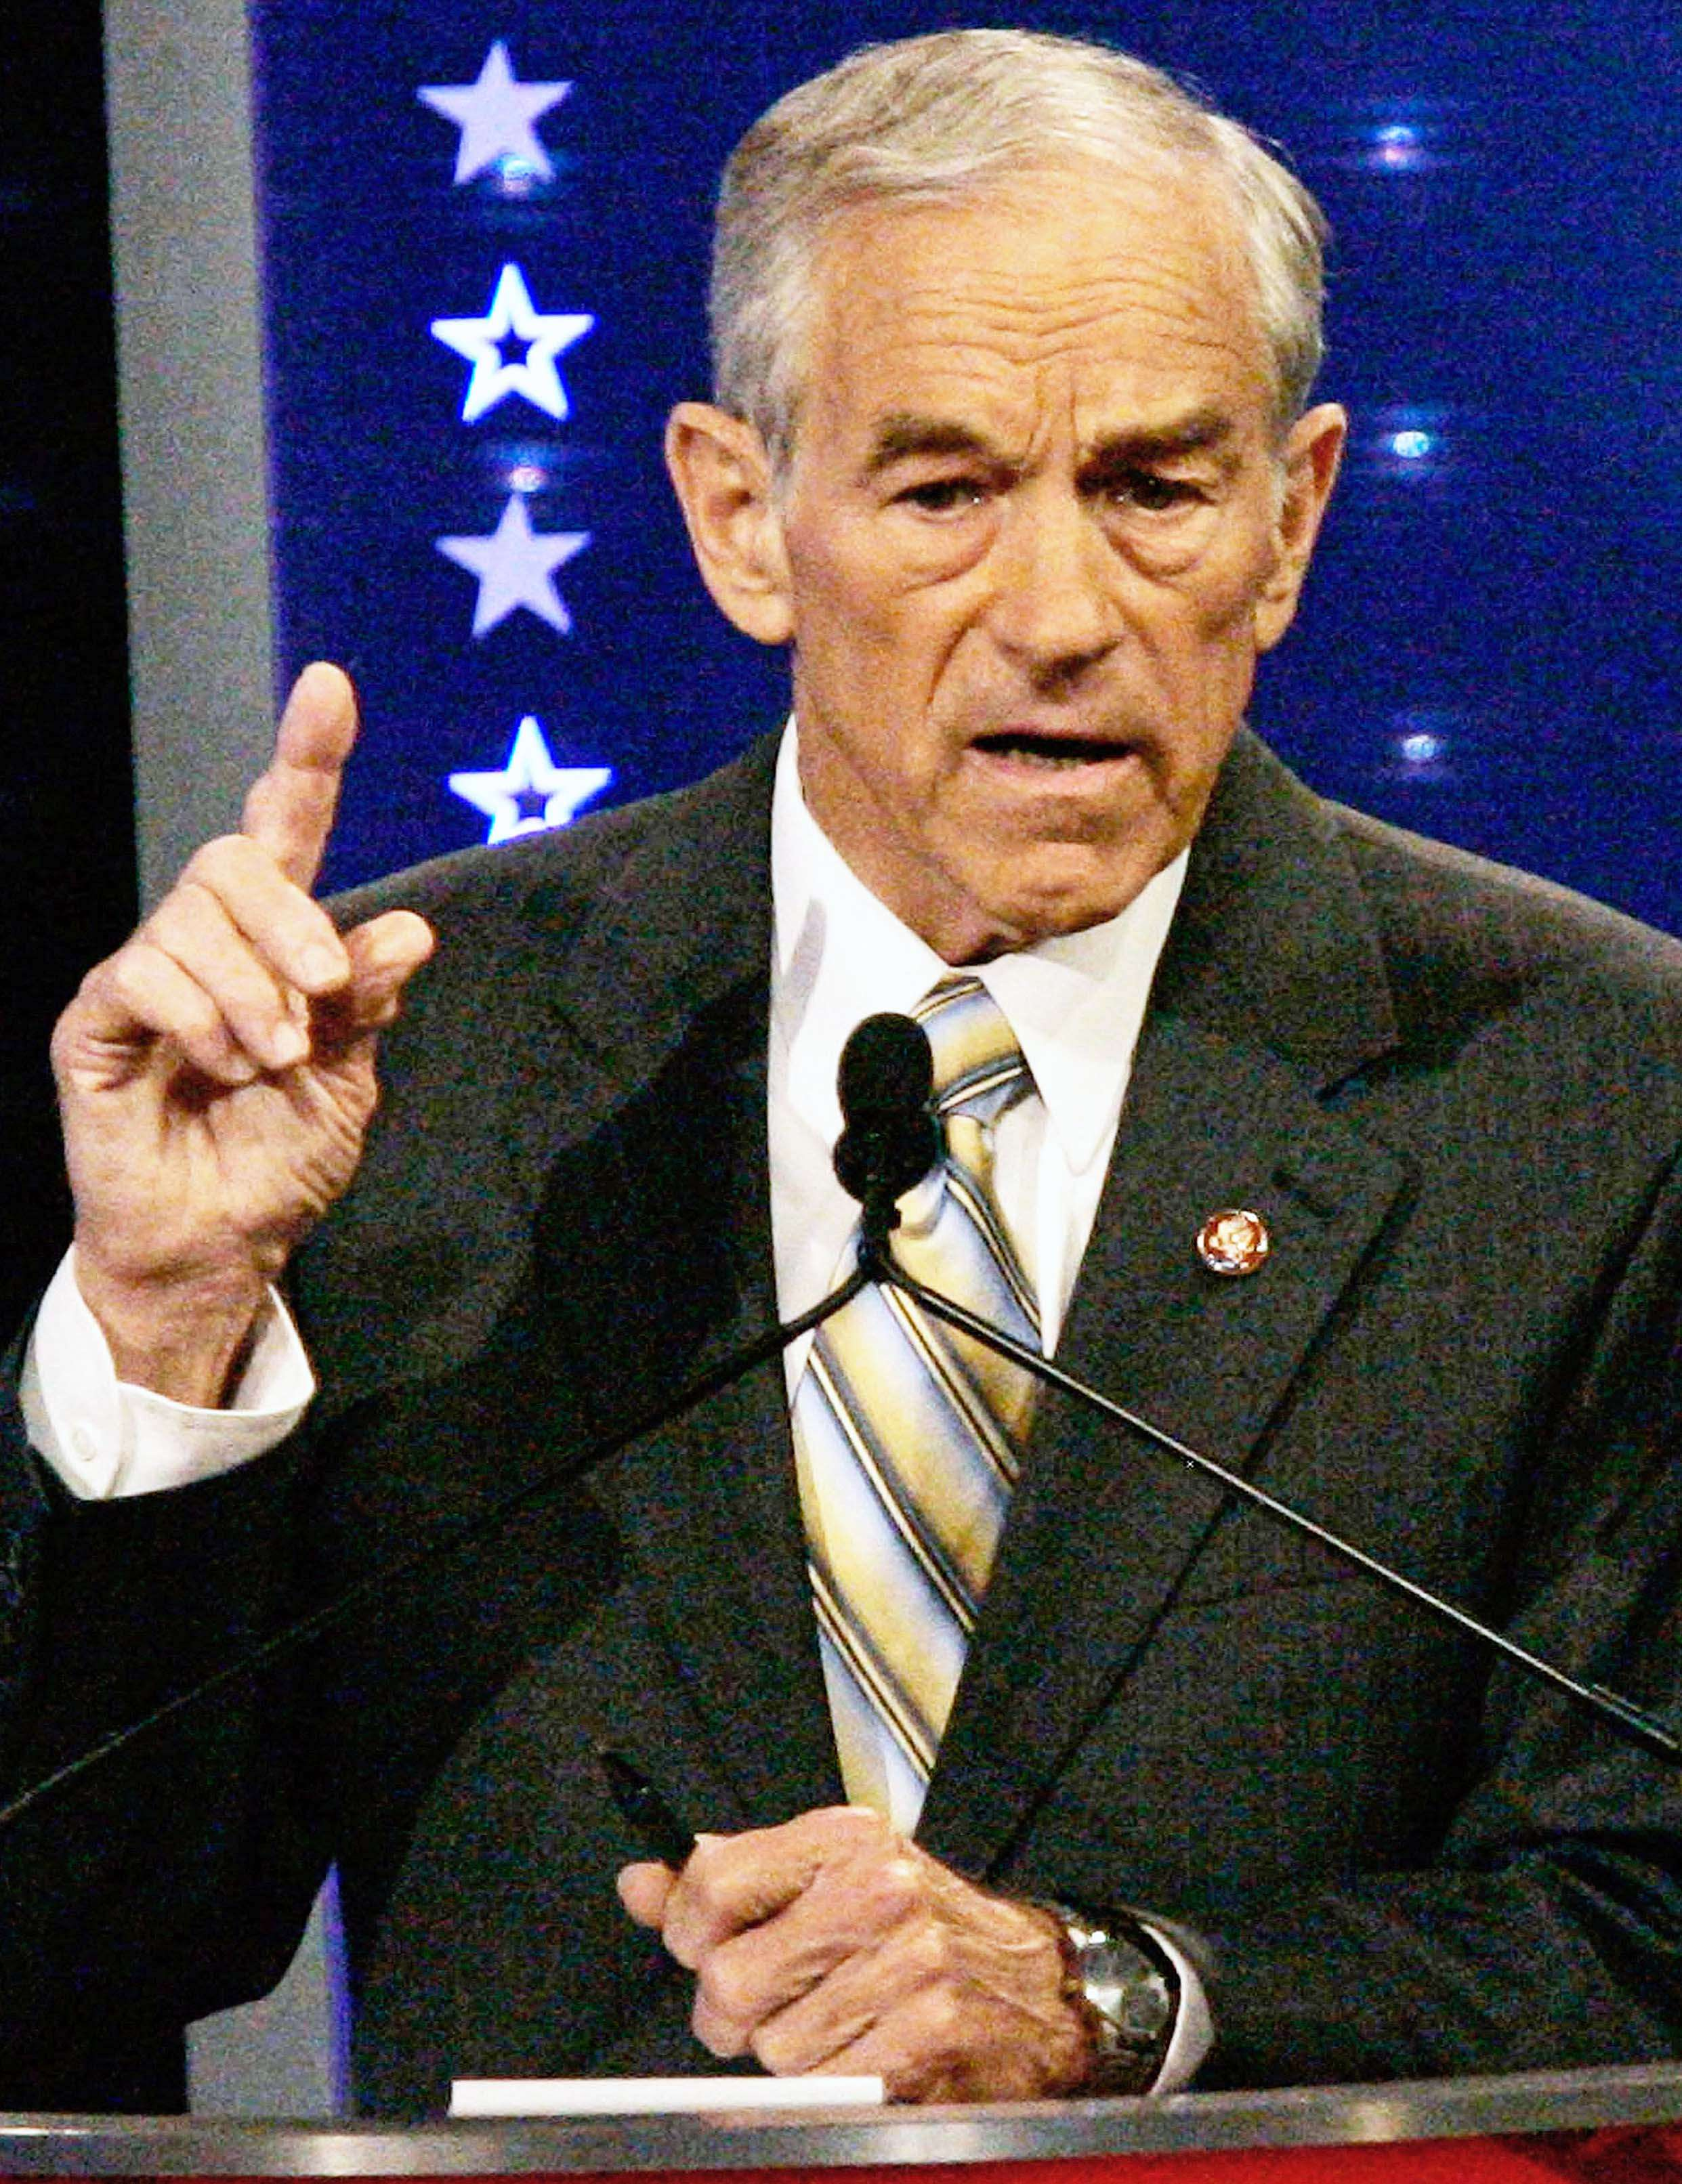 Ron Paul at a primary debate in 2007.